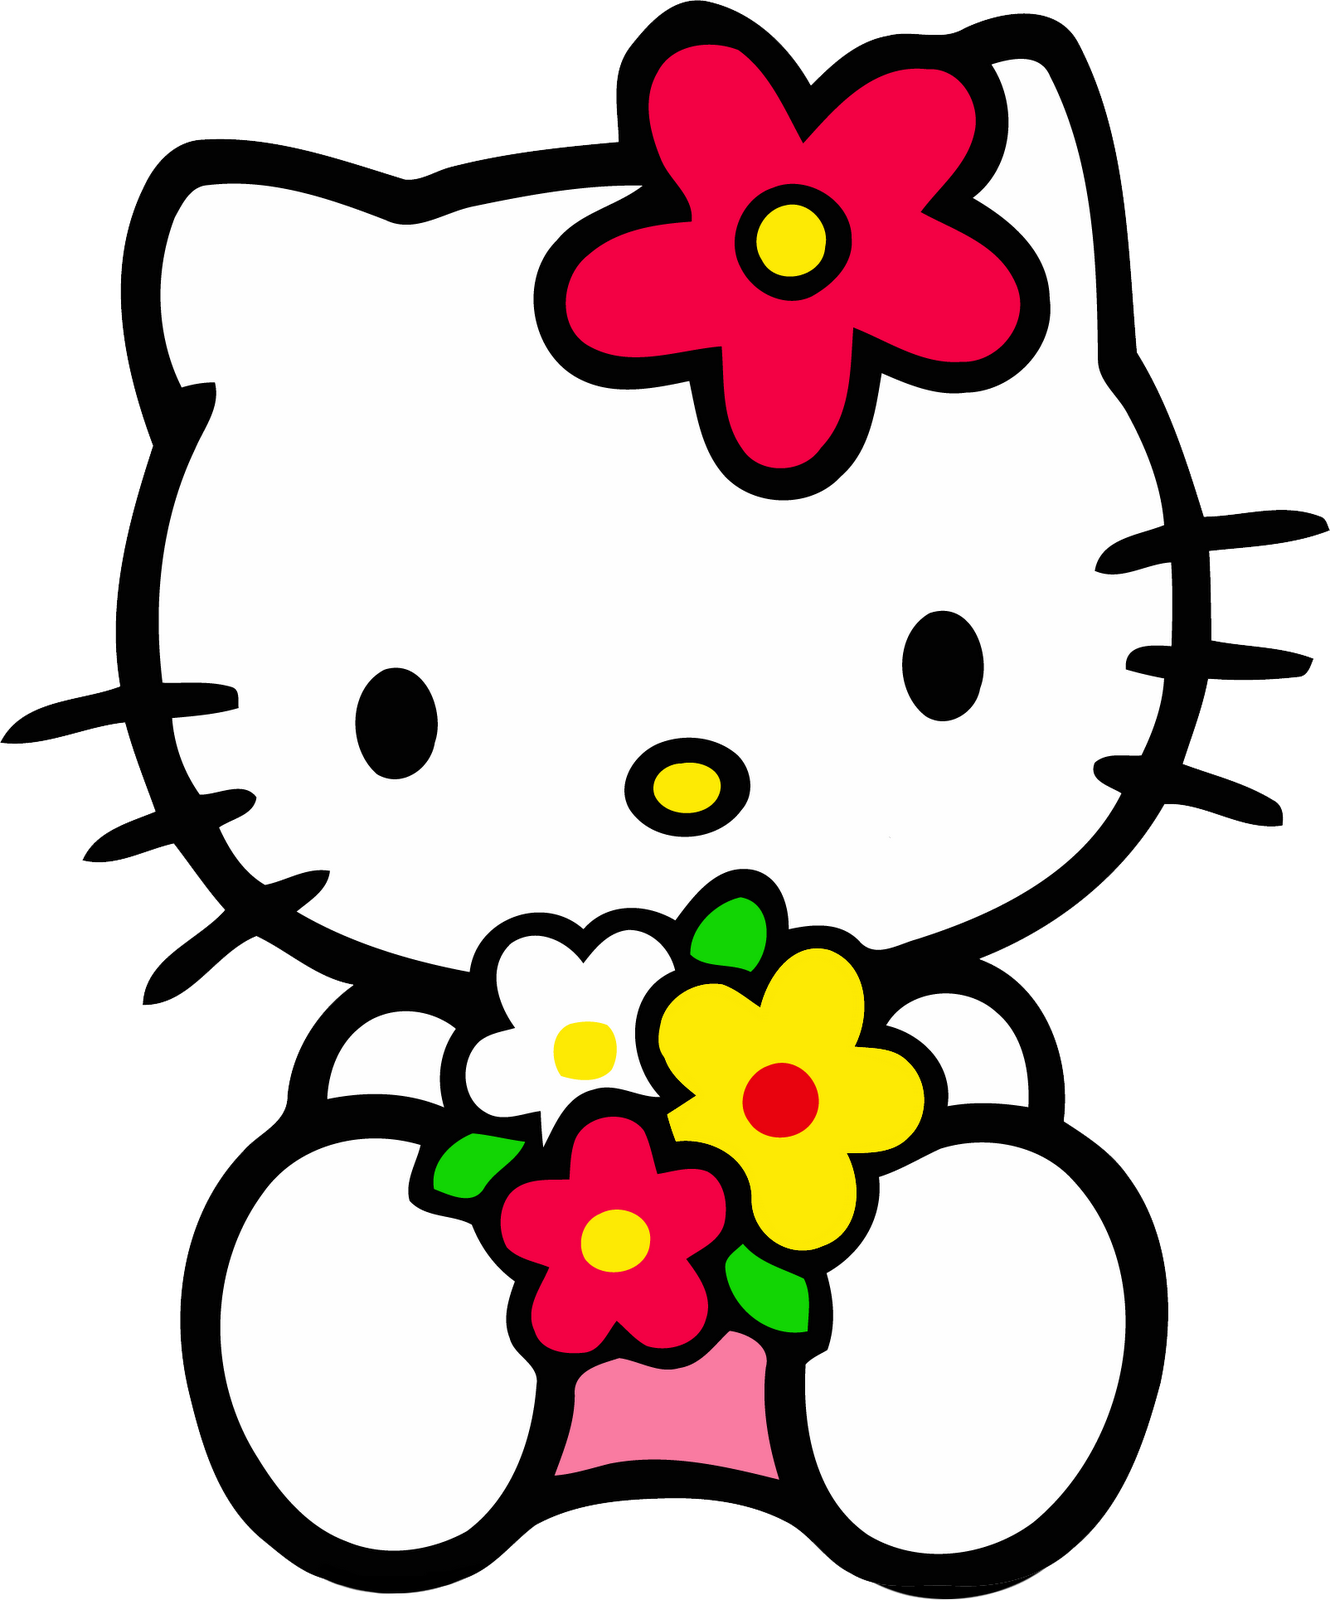 Wednesday clipart hello. Imageslist com kitty images